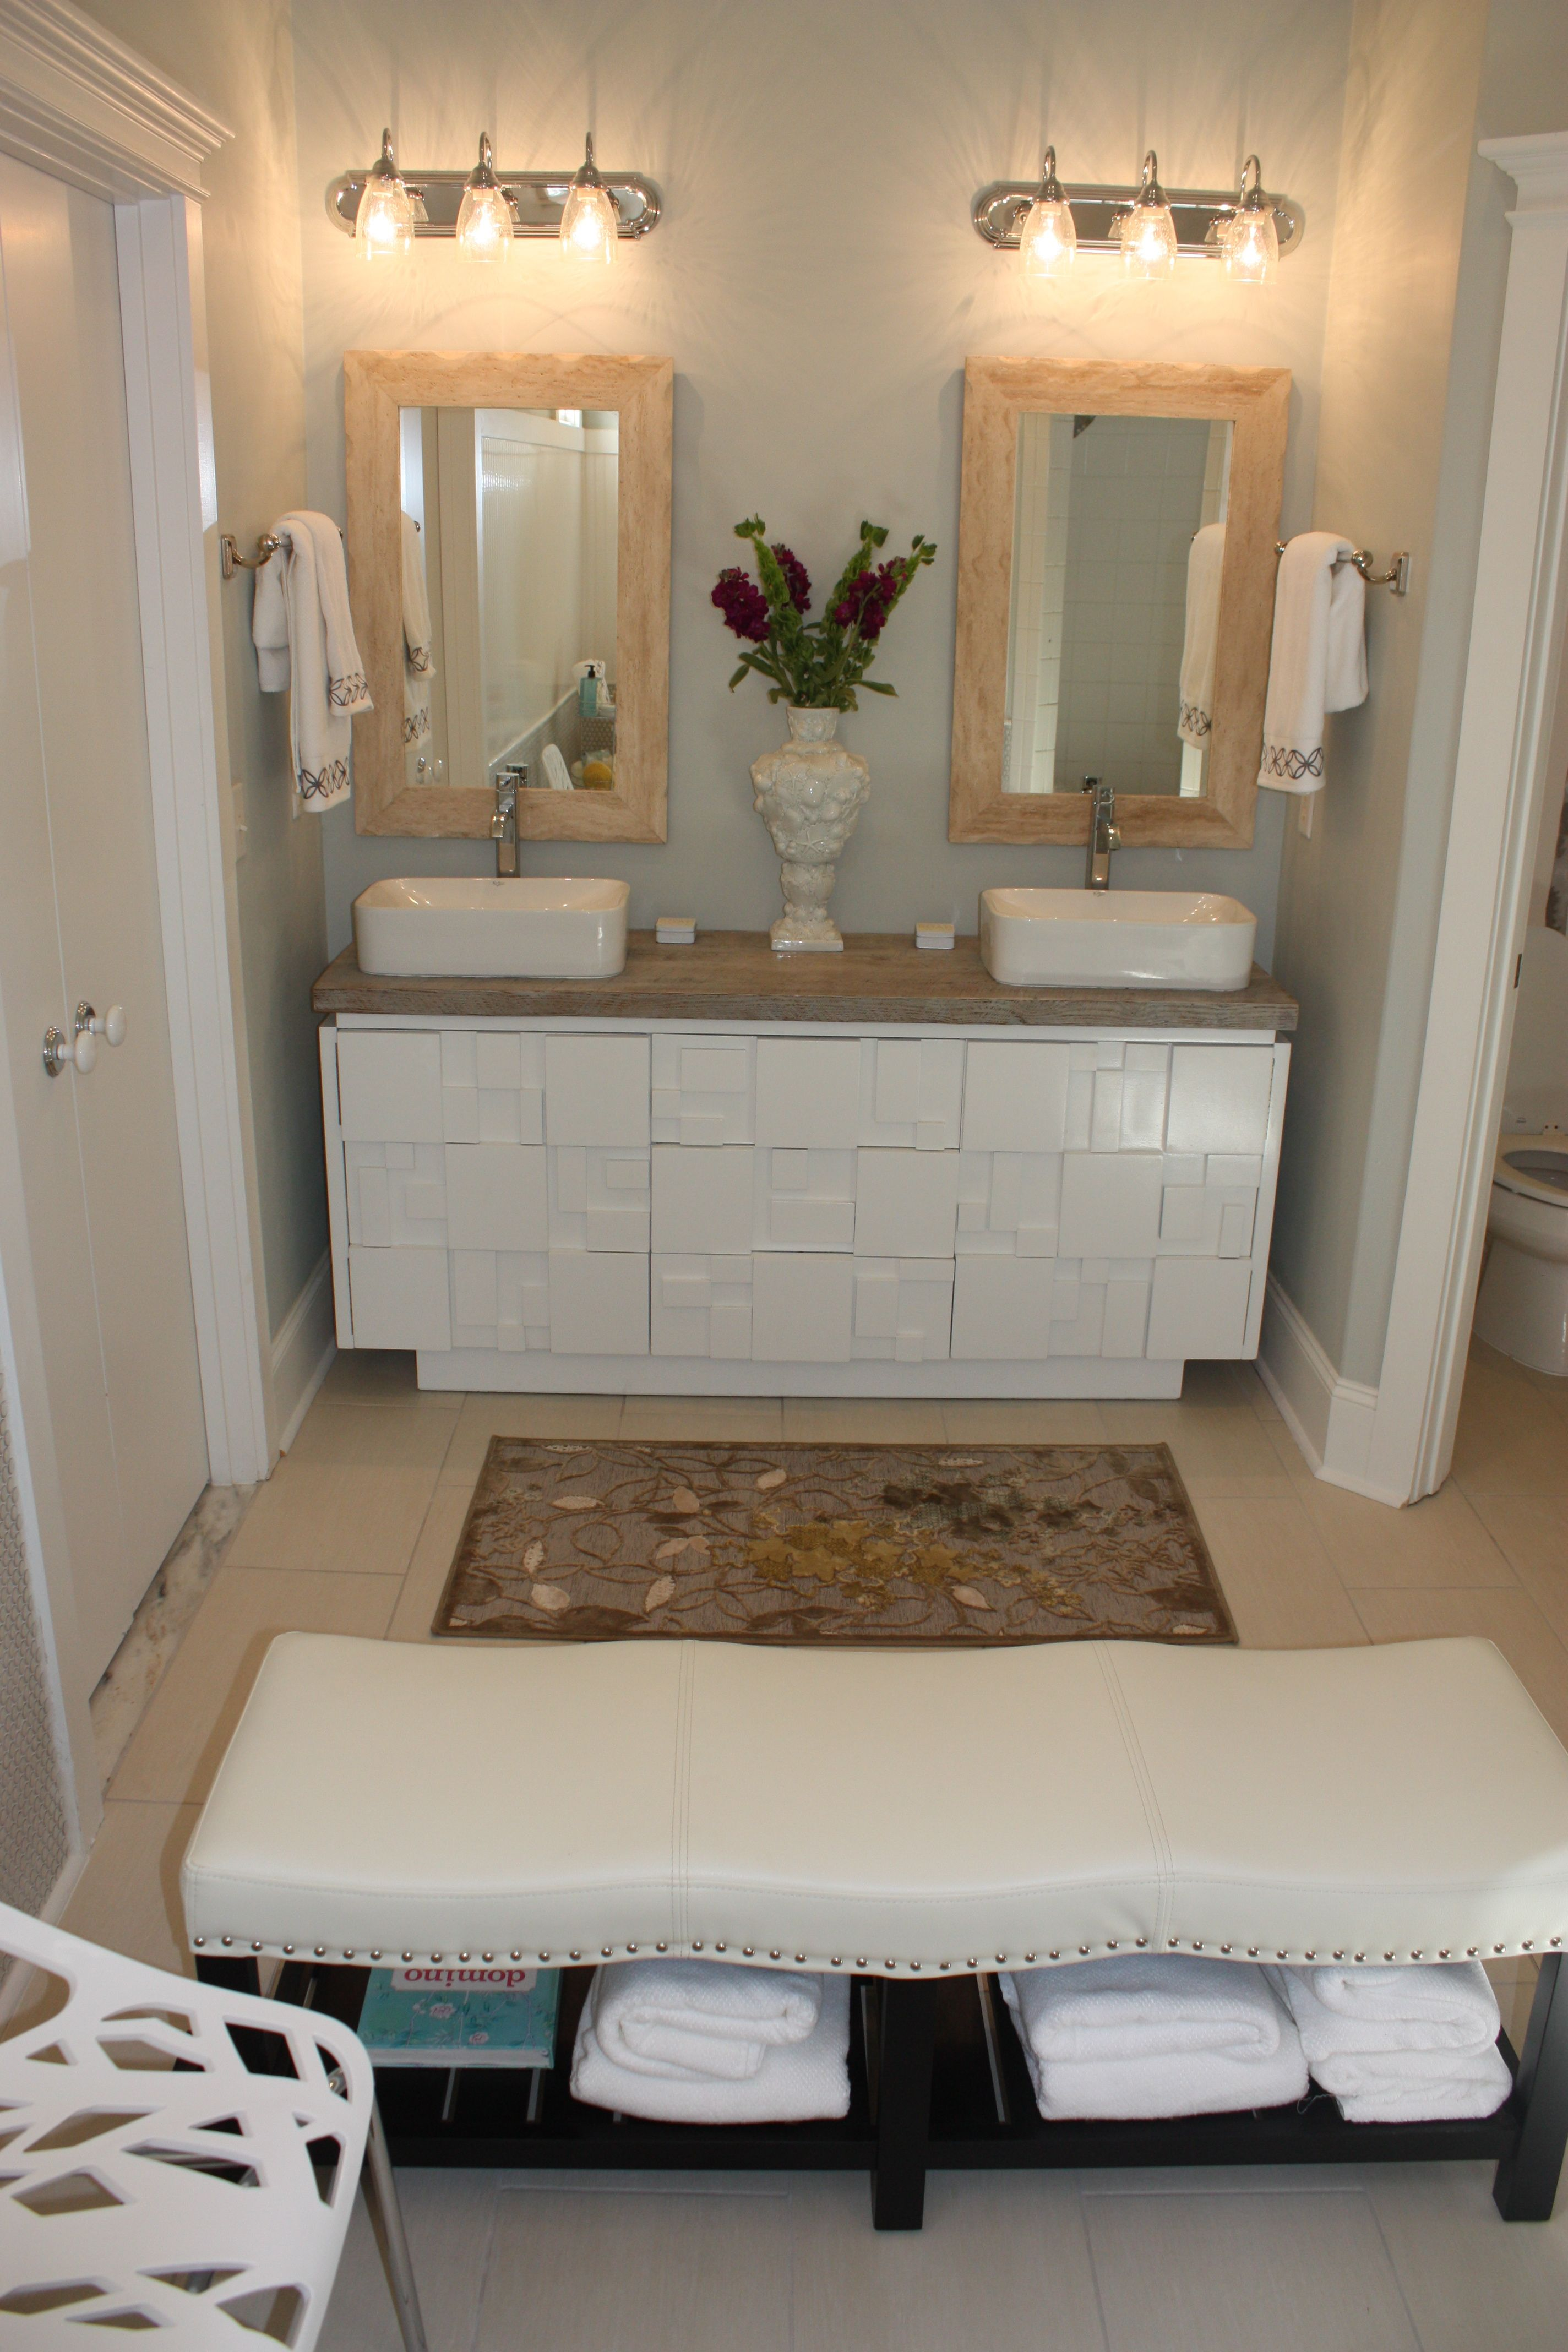 This Bathroom Renovation Includes A HomeGoods Bench